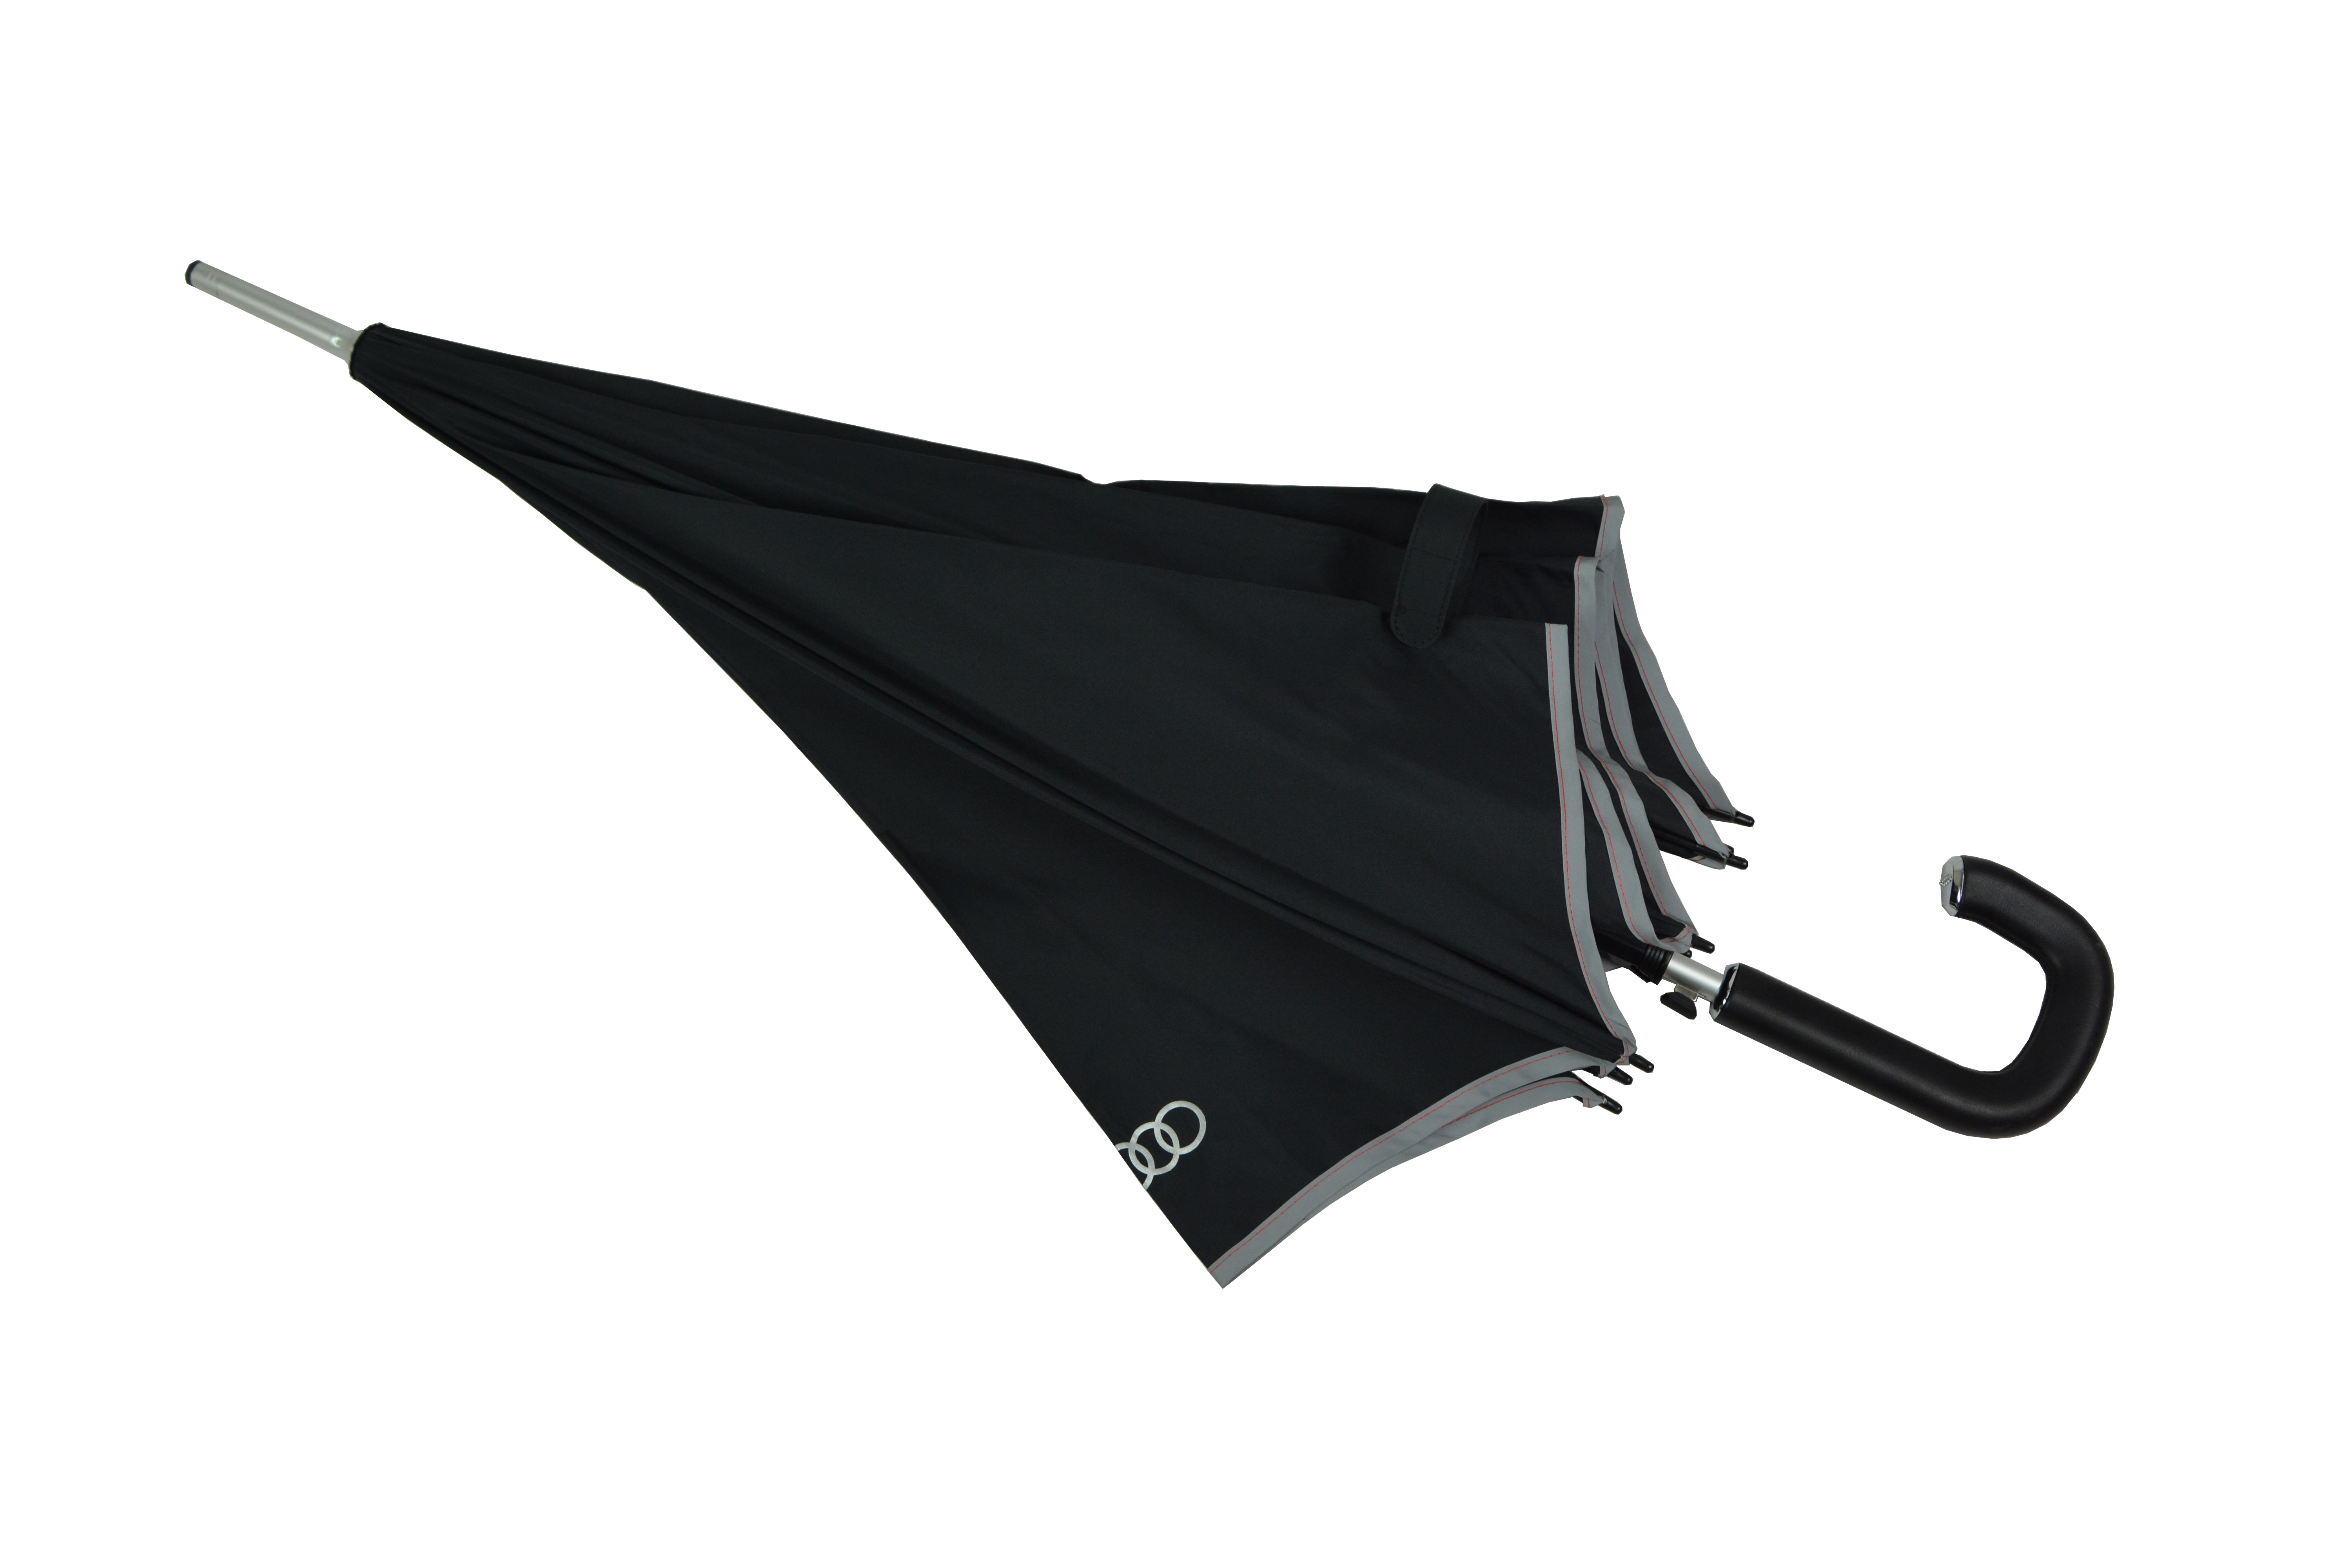 exclusive 27 inch straight golf umbrella with special PU leather